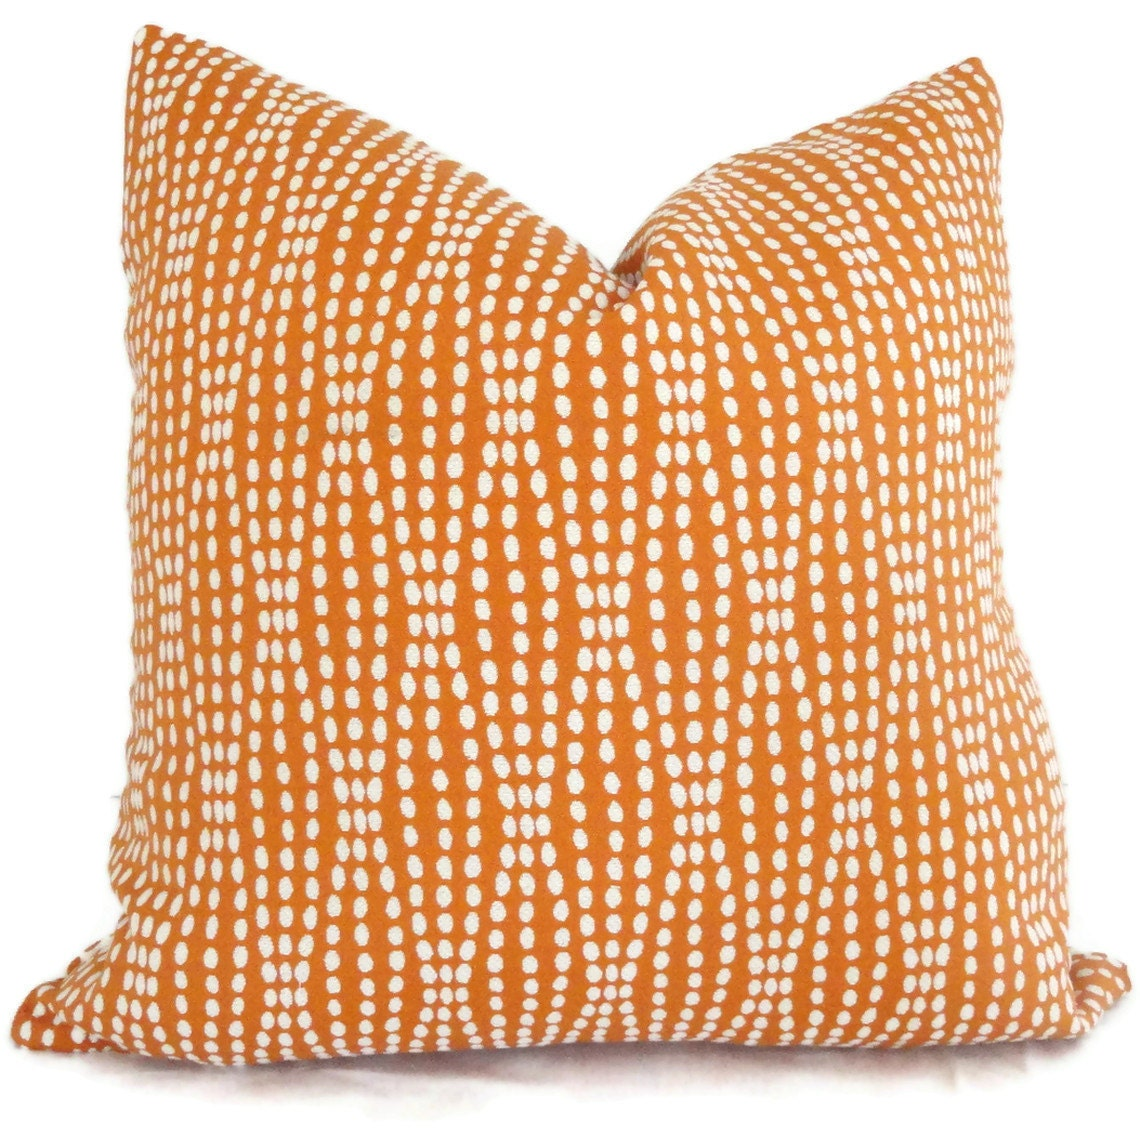 Throw Pillows With Orange : Pillow Cover Orange and White Reversible Dot Decorative